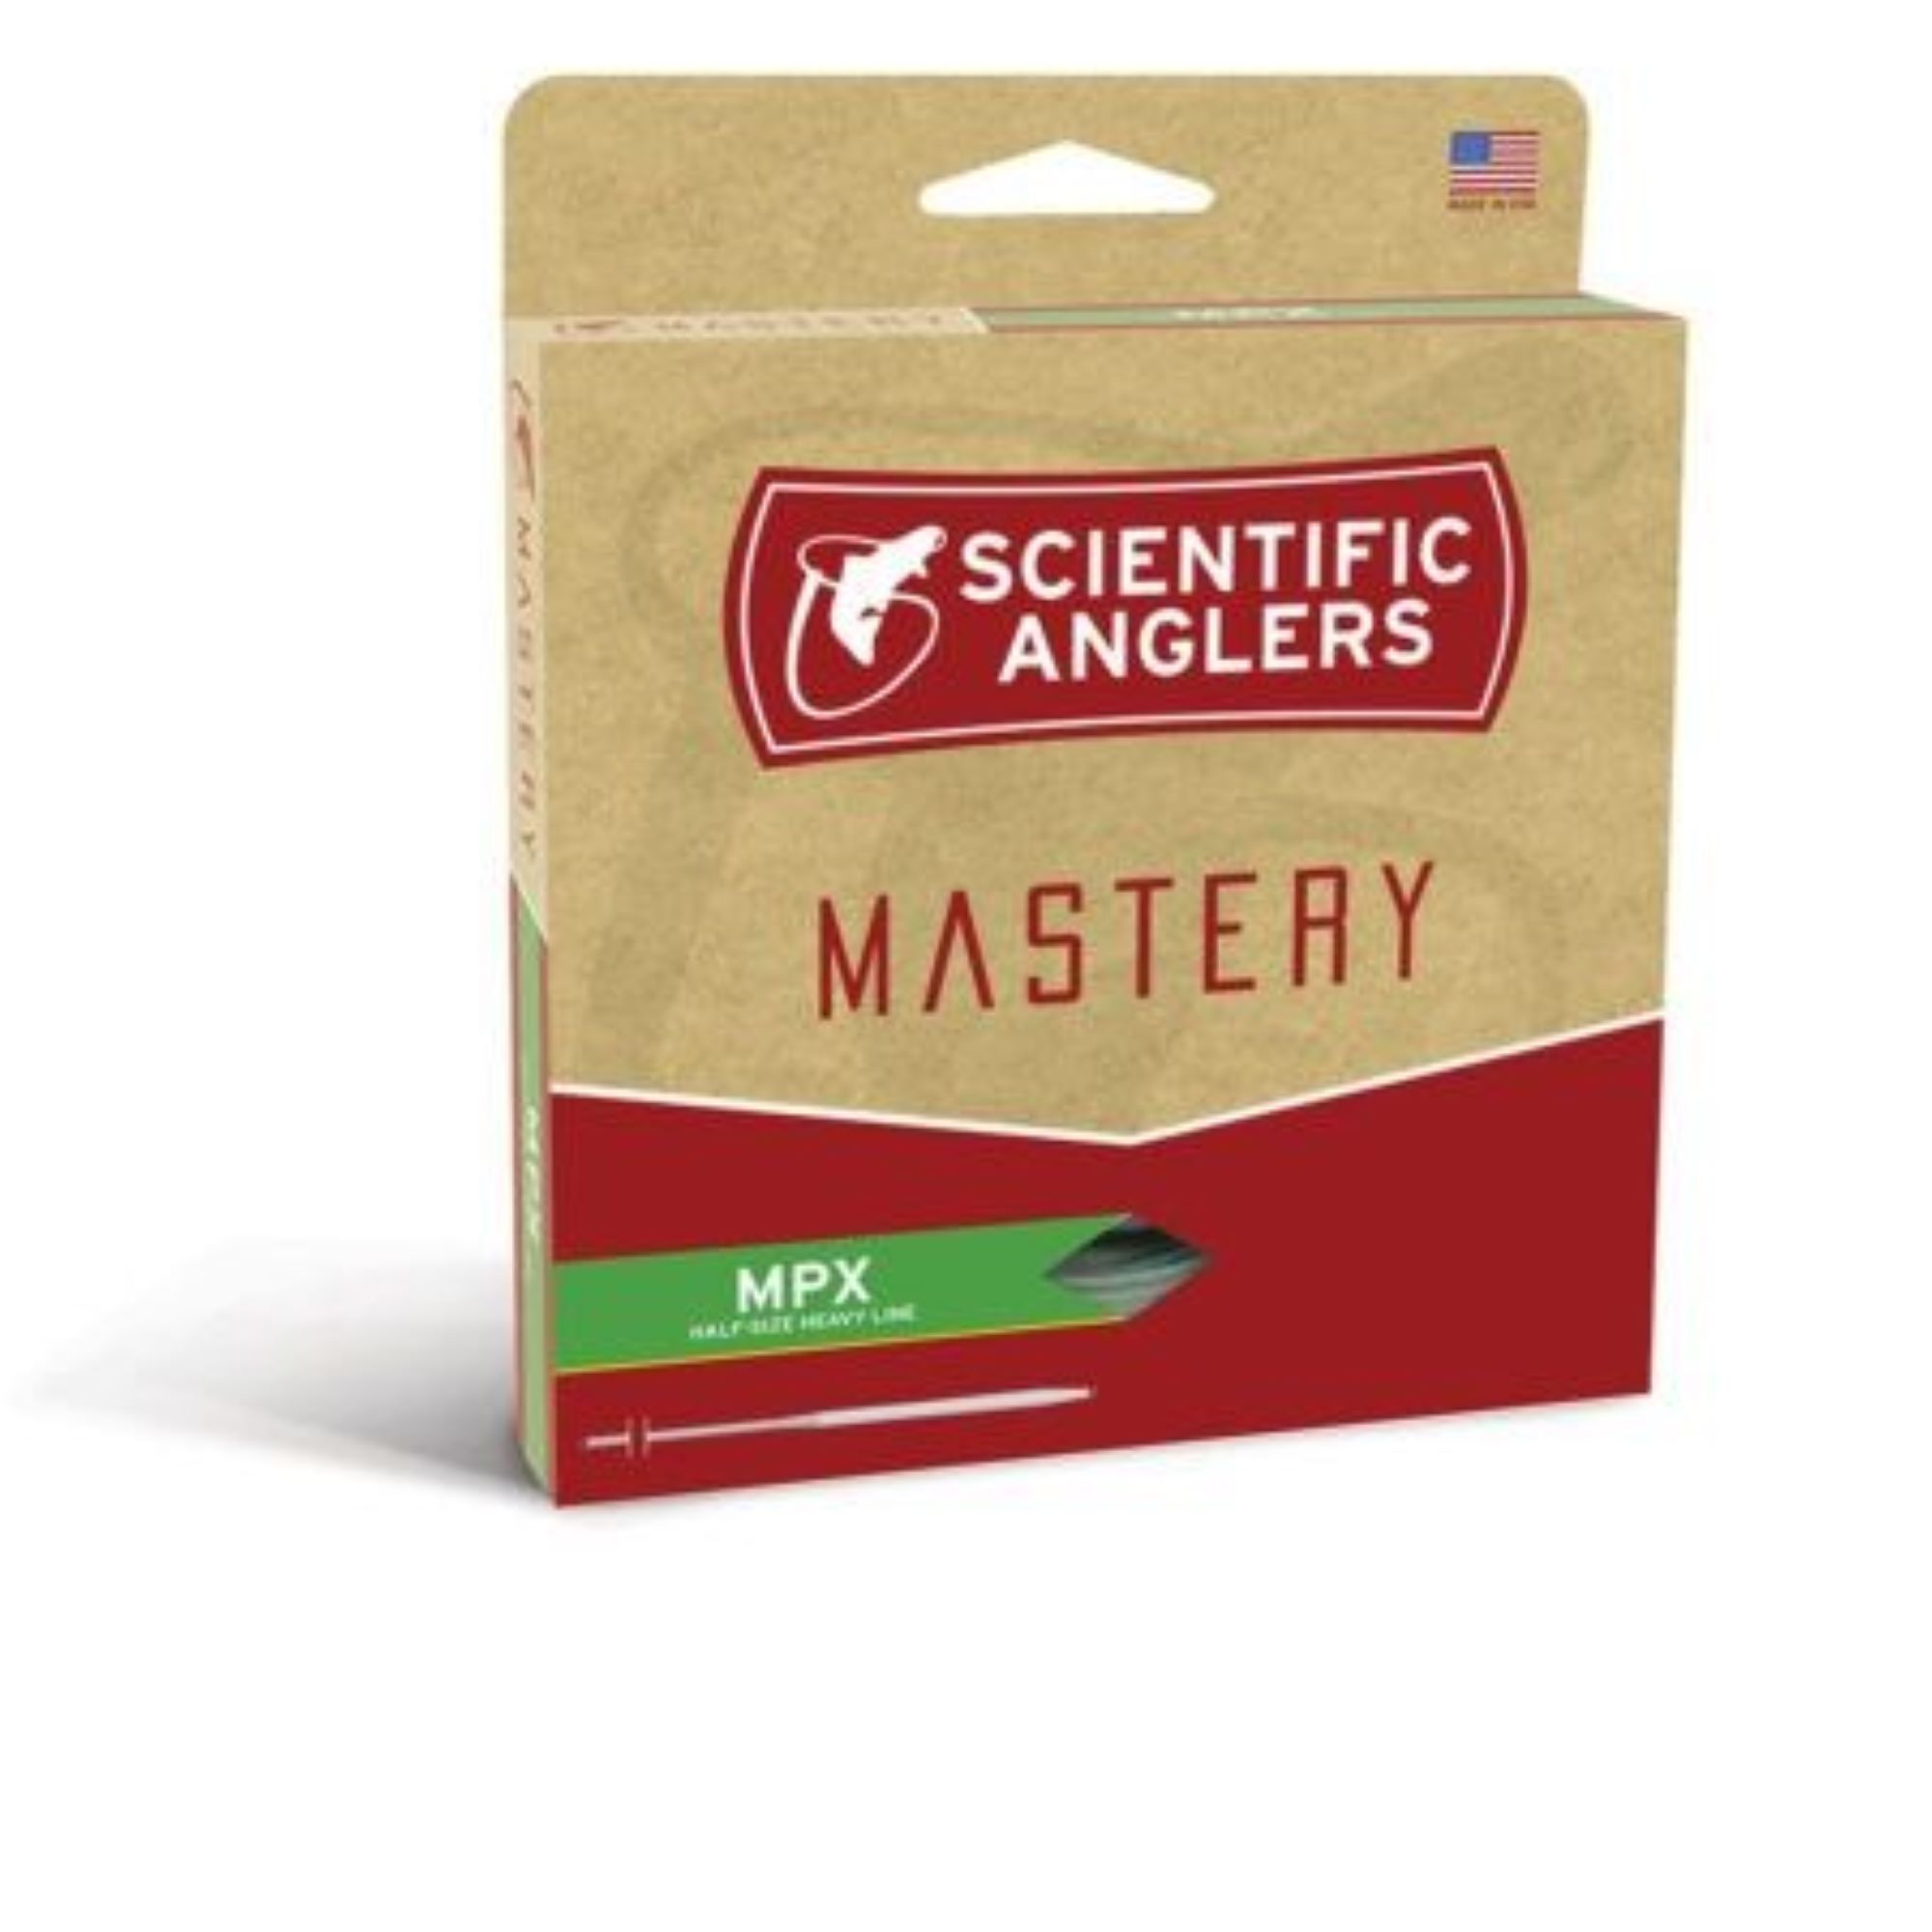 Scientific Angler Fly Line Mastery - MPX